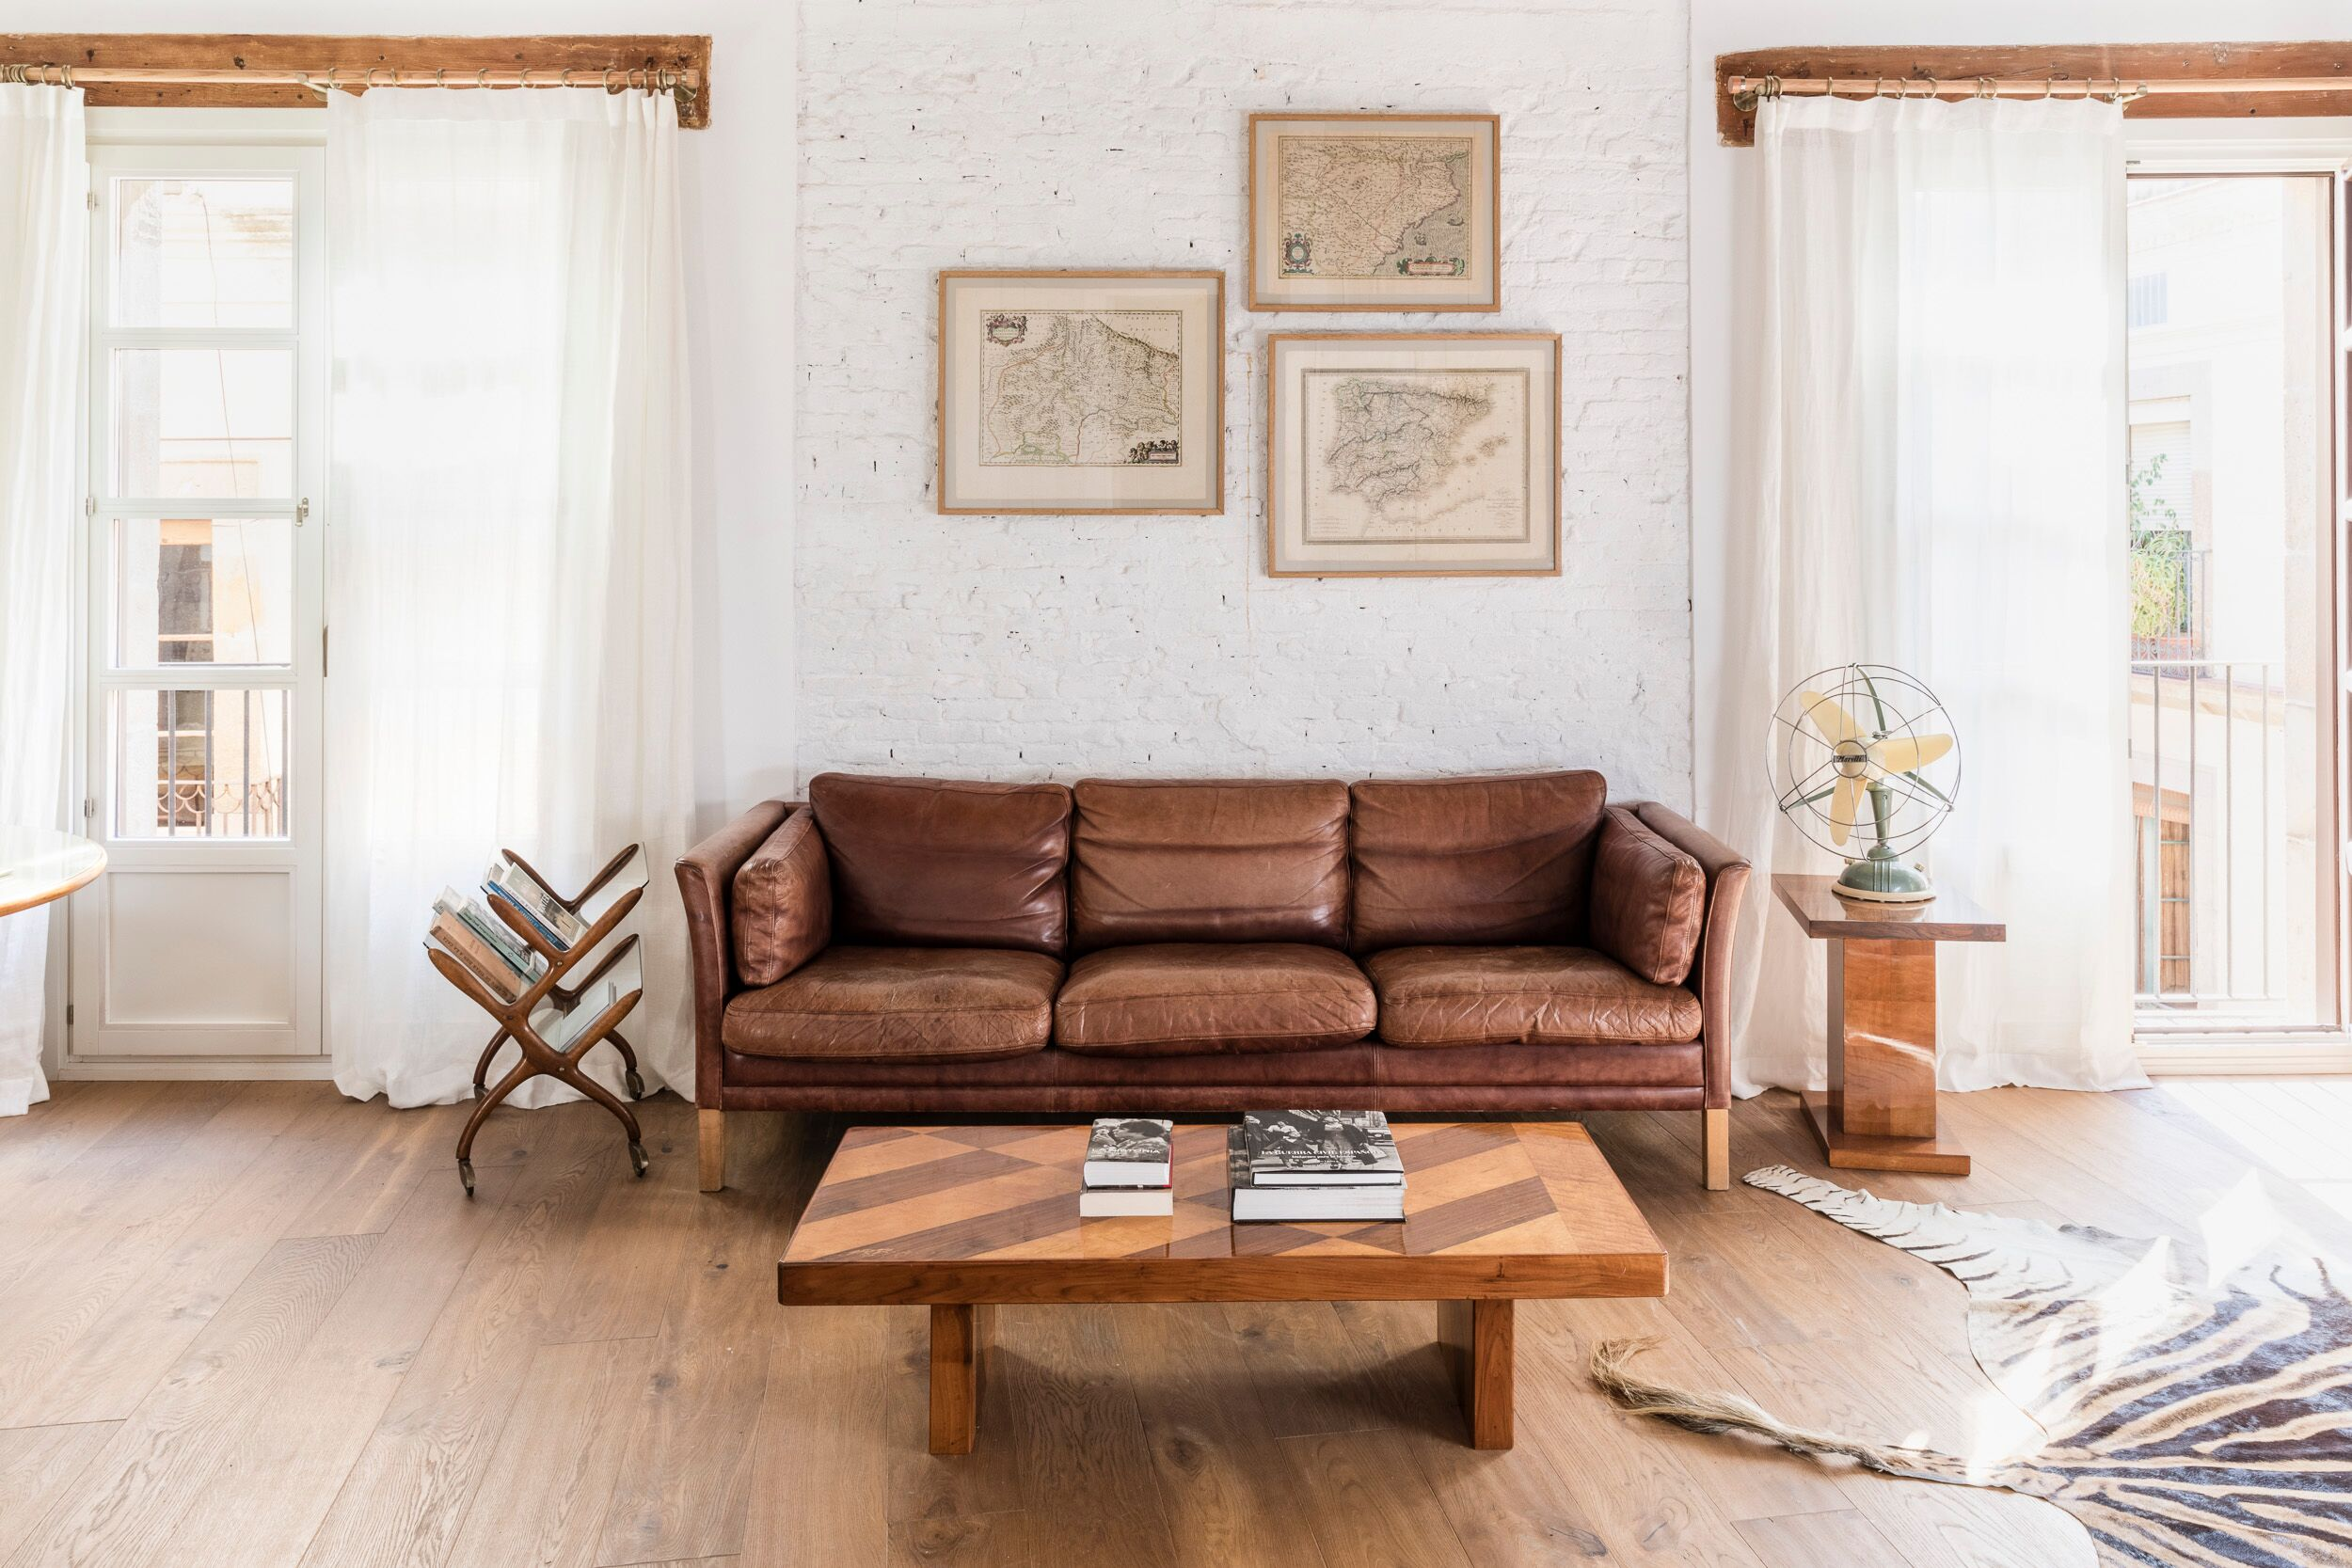 spanish interior design Spanish Interior Design Alert: A Mid-Century Lifestyle by A&B Curated gUwqDigw